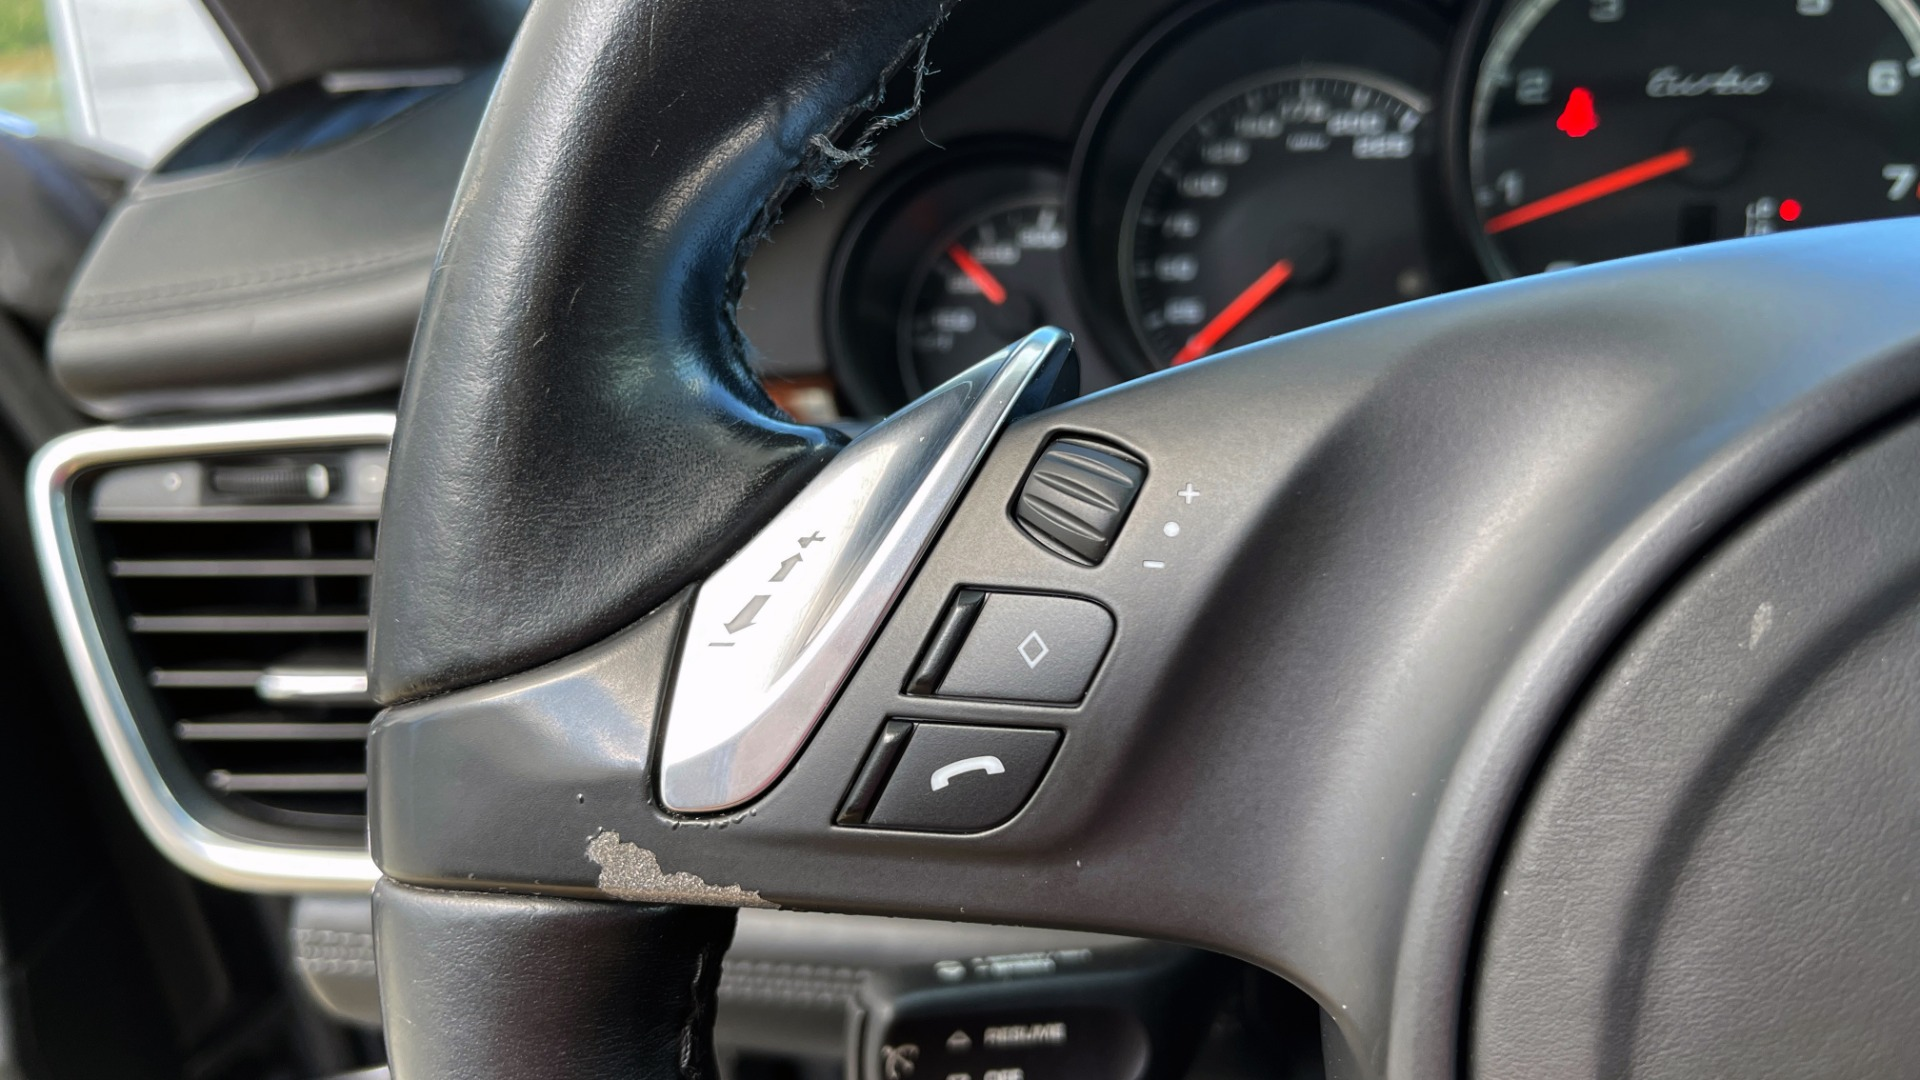 Used 2010 Porsche PANAMERA 4DR HB TURBO / SPORT CHRONO / BURMESTER / AUTO CLIMATE CONTROL for sale $40,995 at Formula Imports in Charlotte NC 28227 39